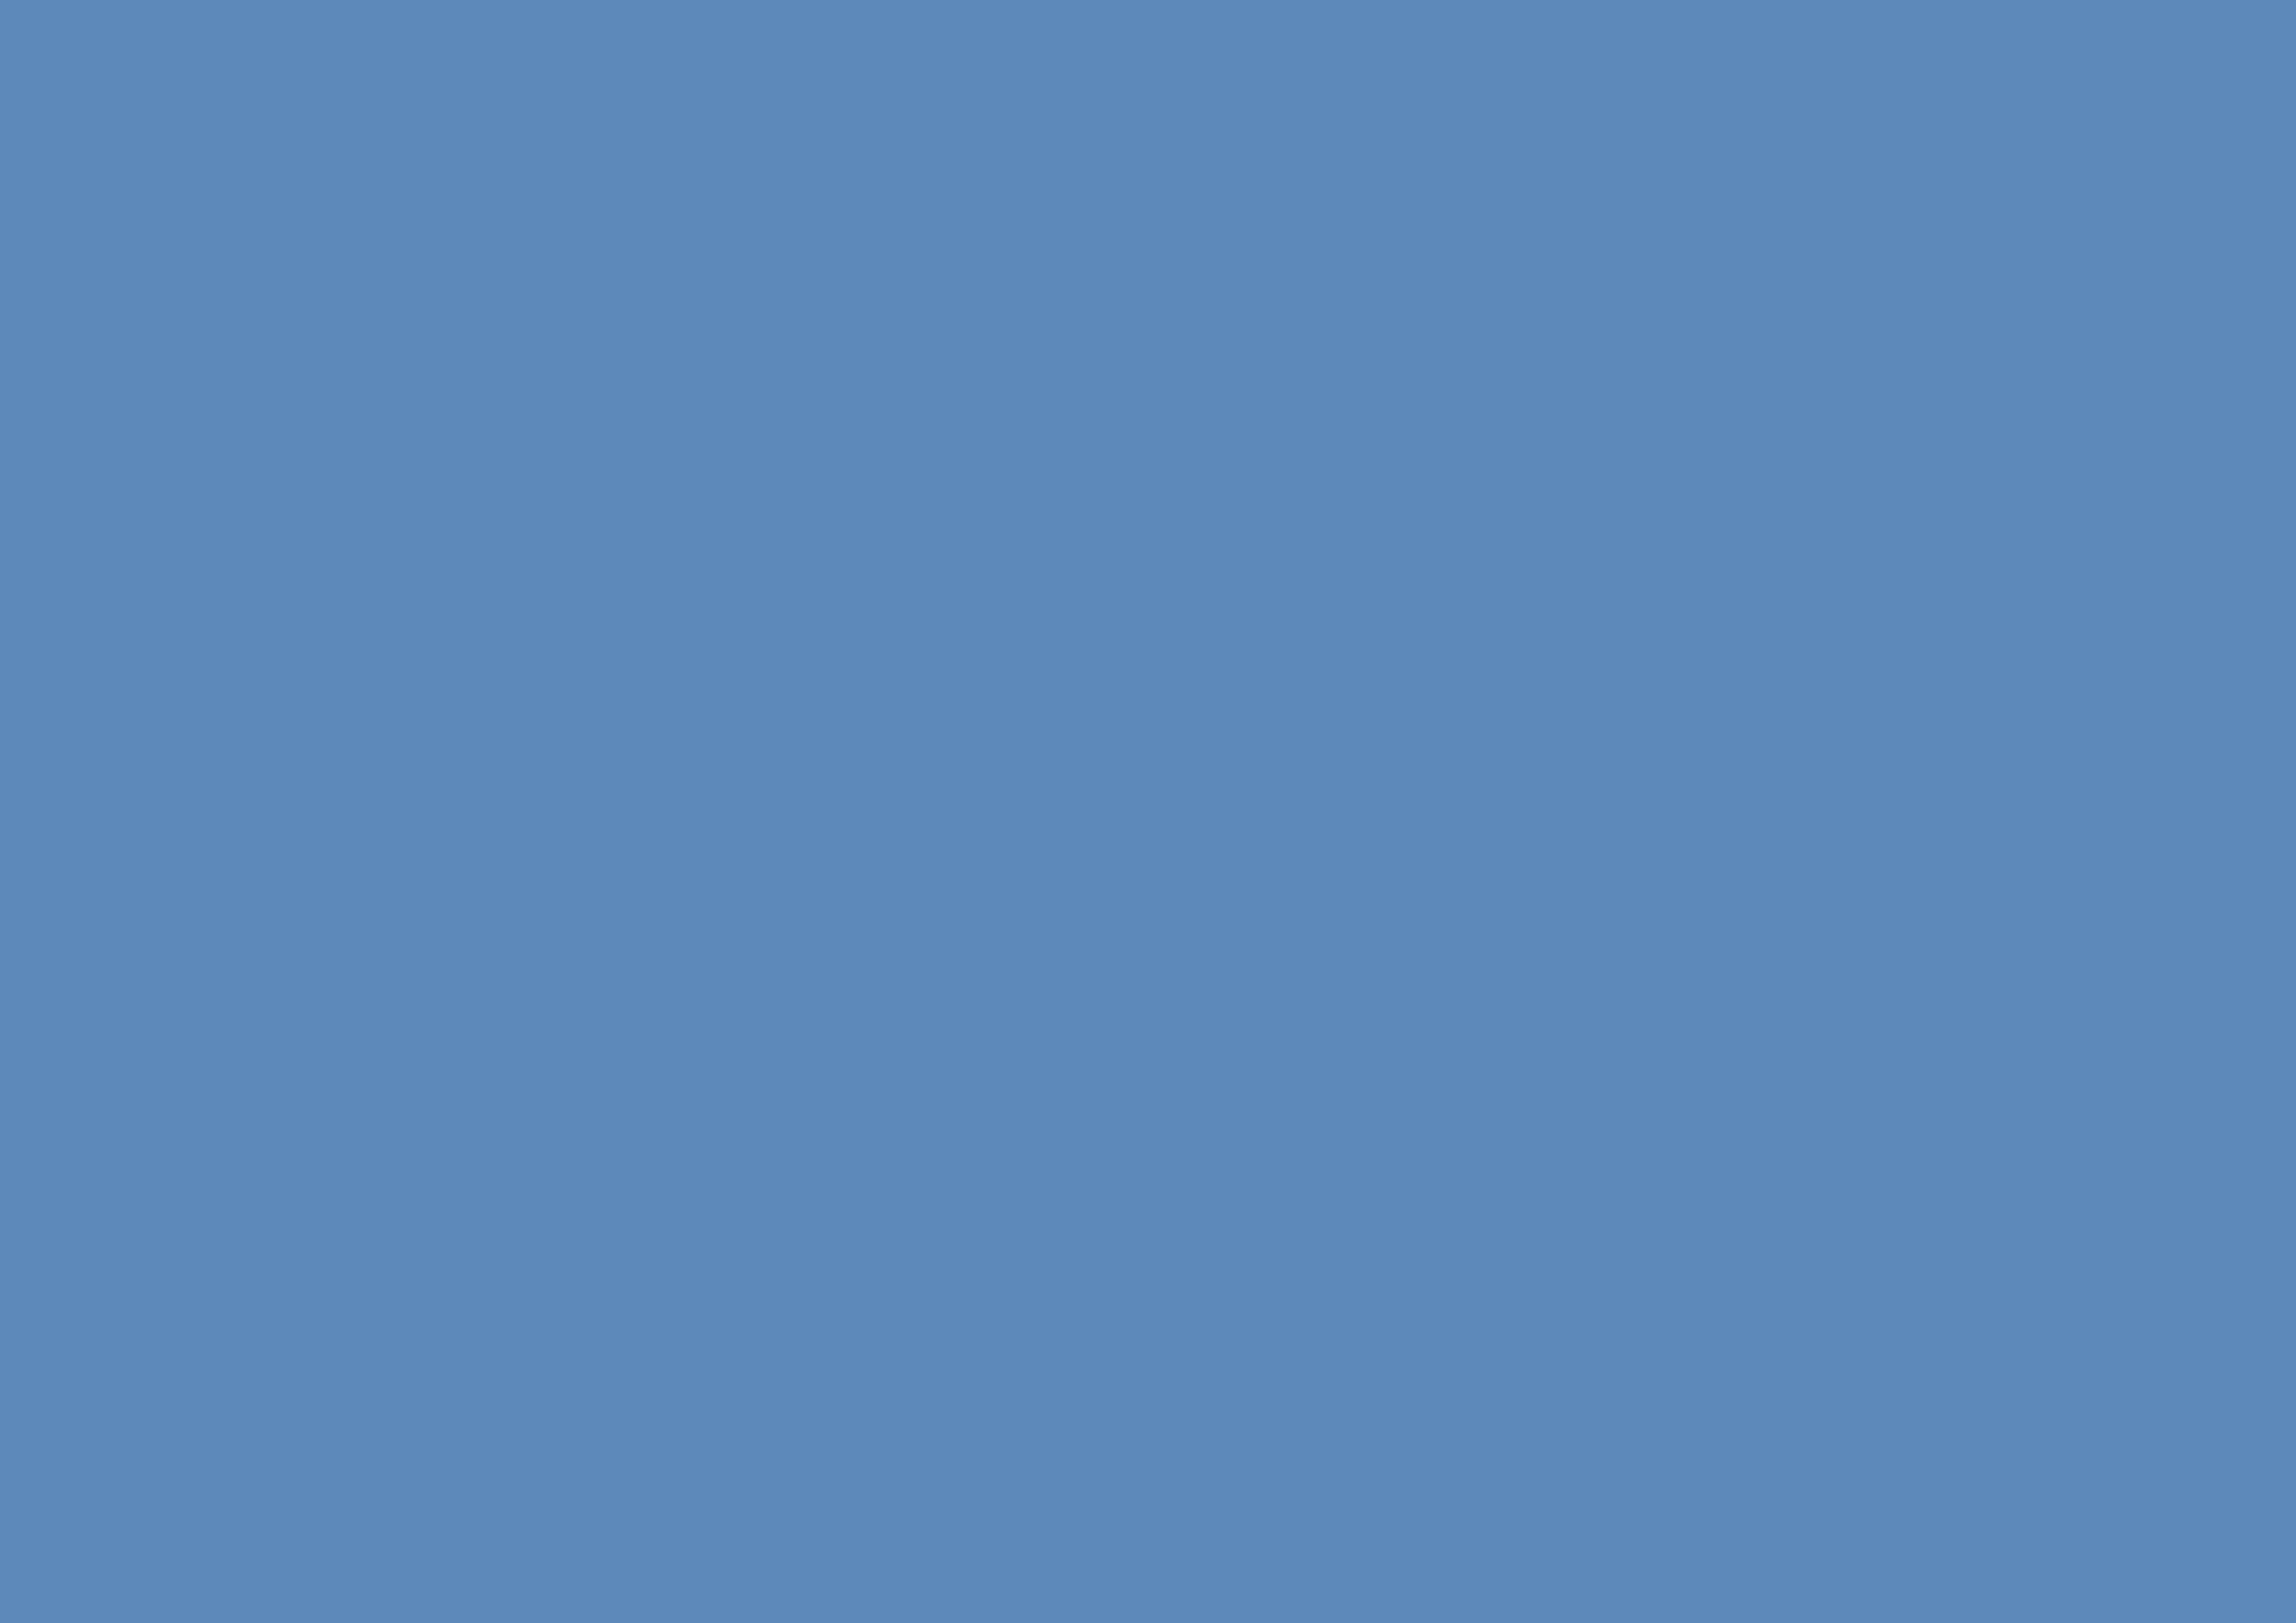 3508x2480 Silver Lake Blue Solid Color Background